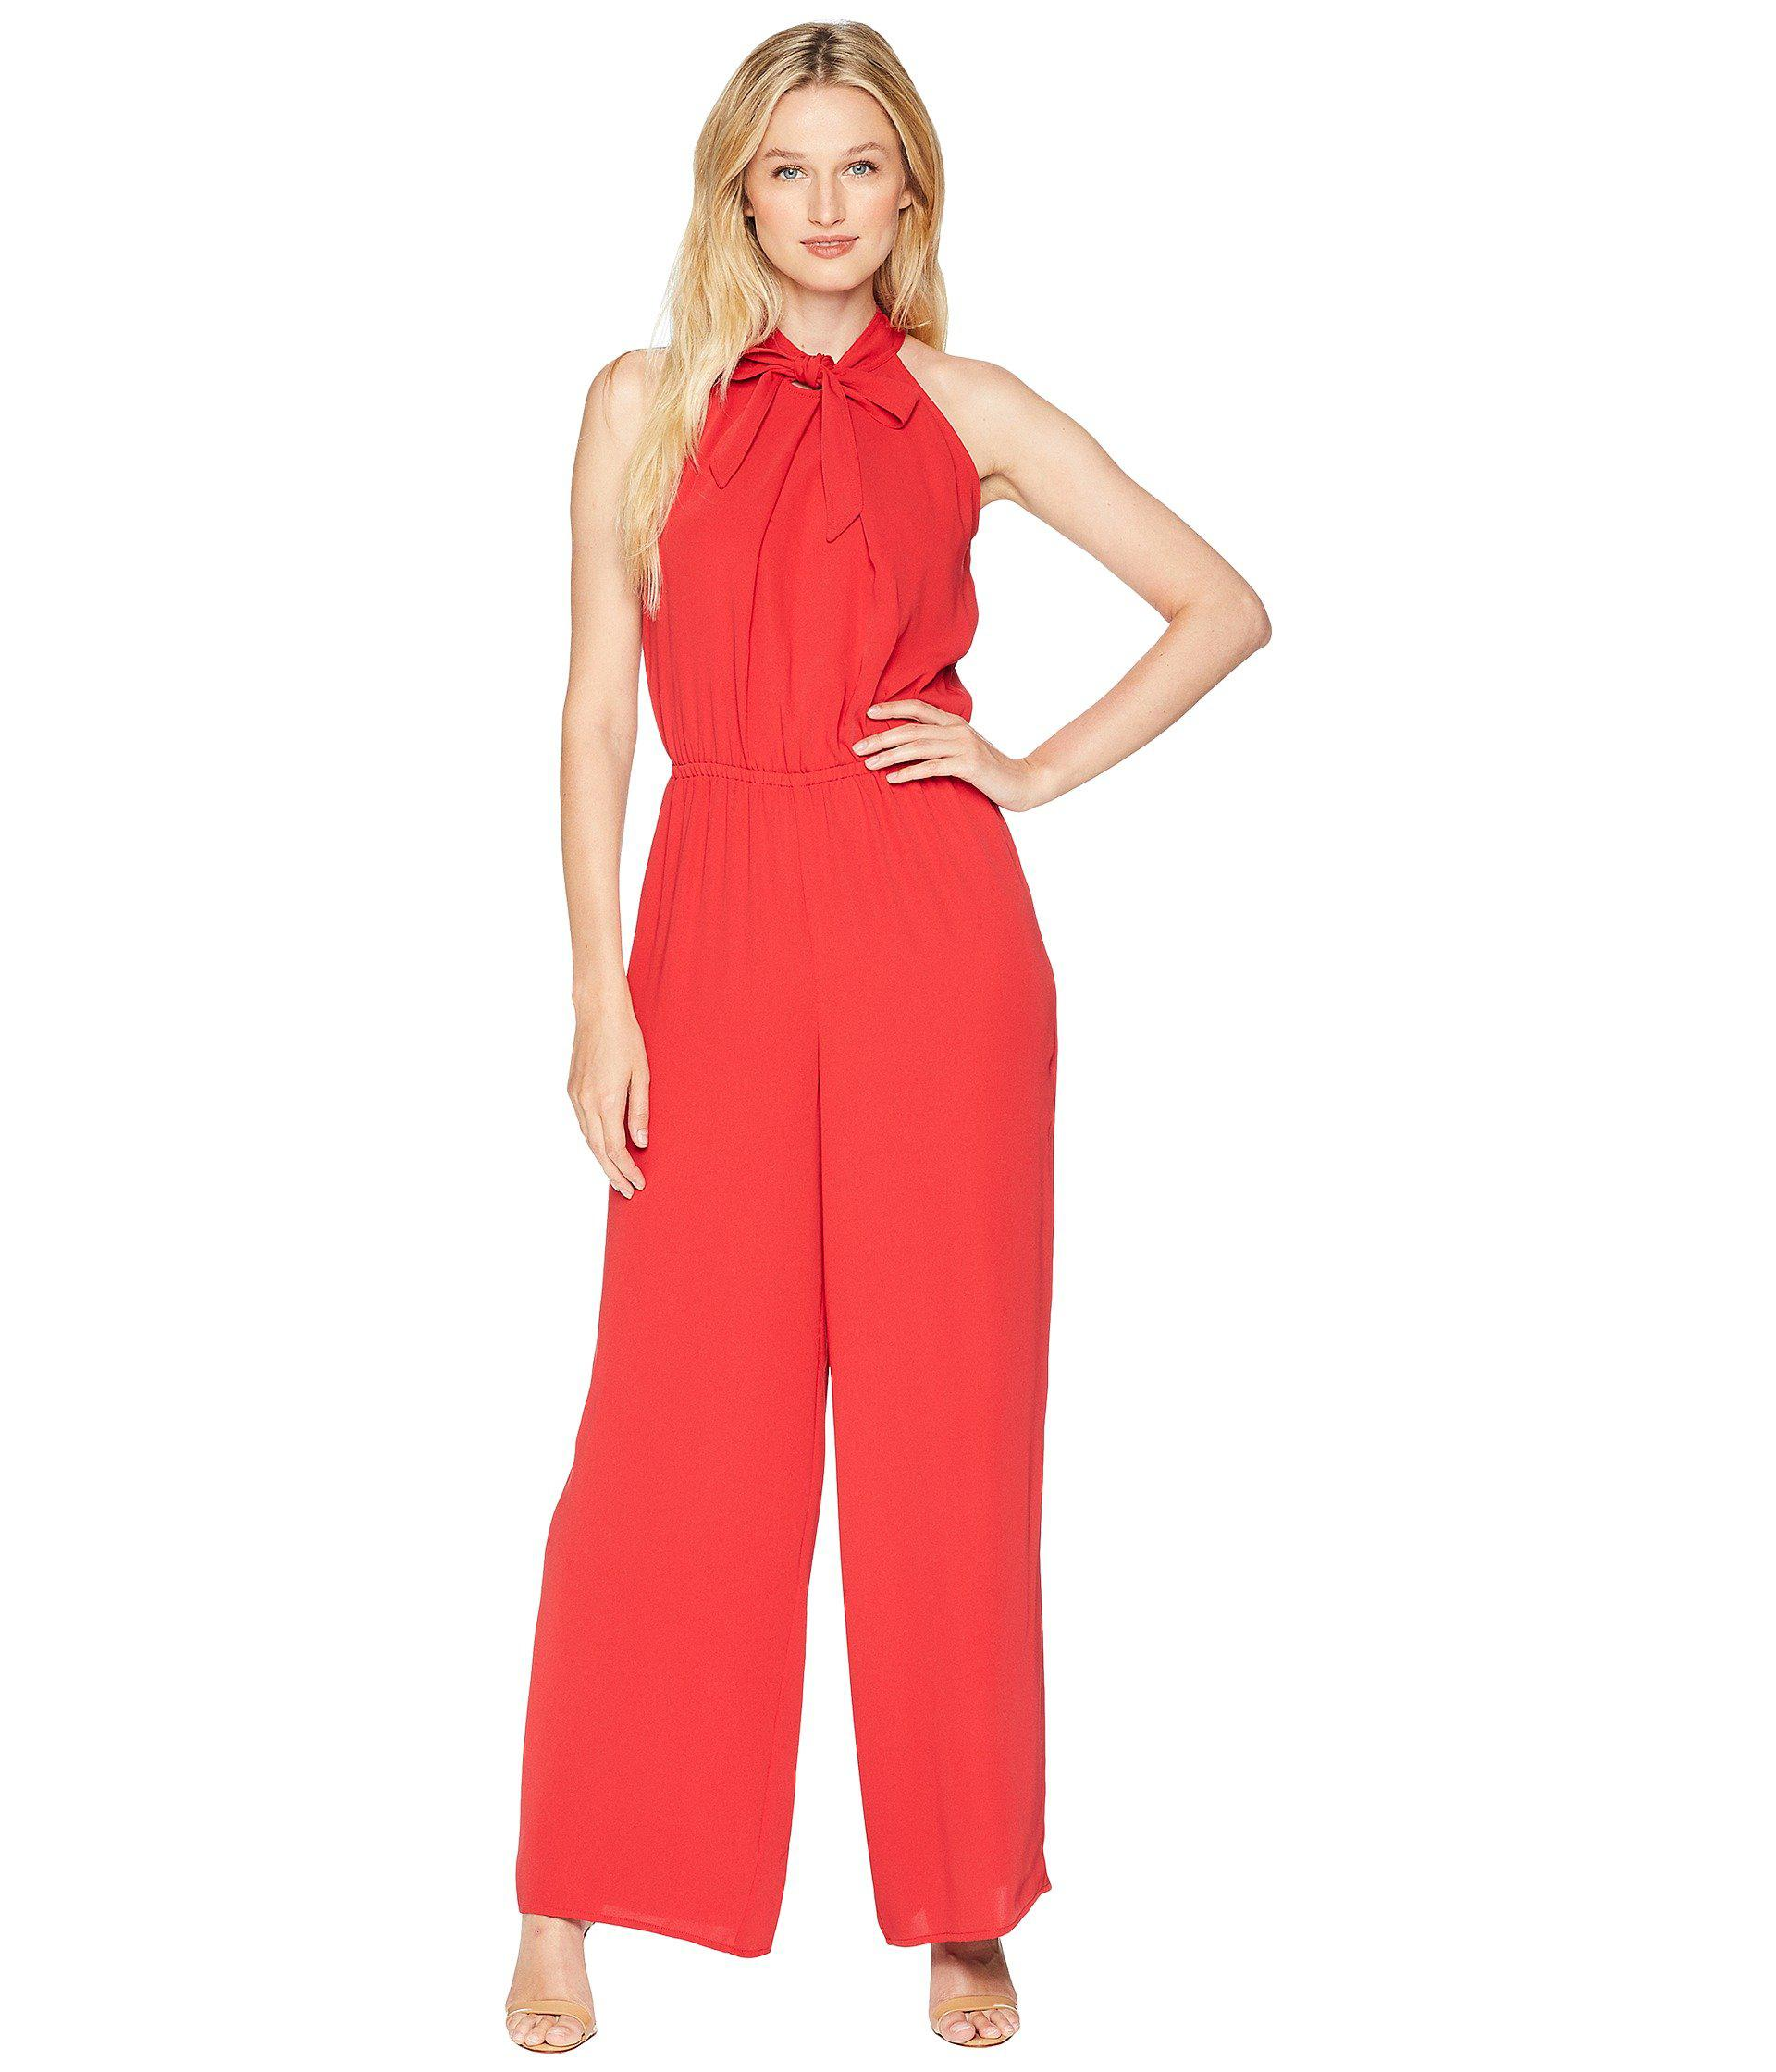 b1a6b91f3d32 Lyst - Cece Tie Neck Crepe Jumpsuit in Red - Save 58%